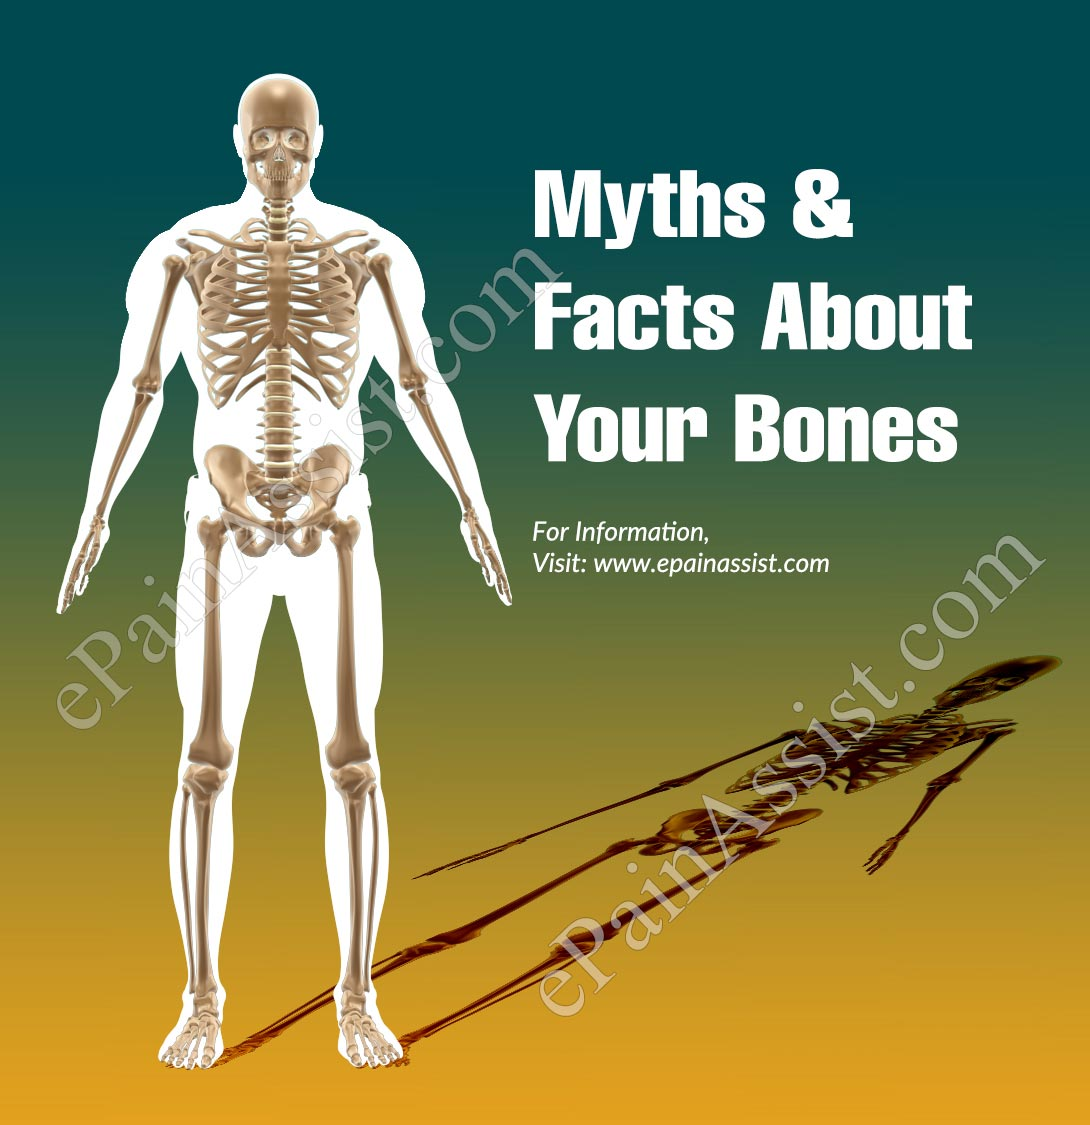 Myths & Facts About Your Bones